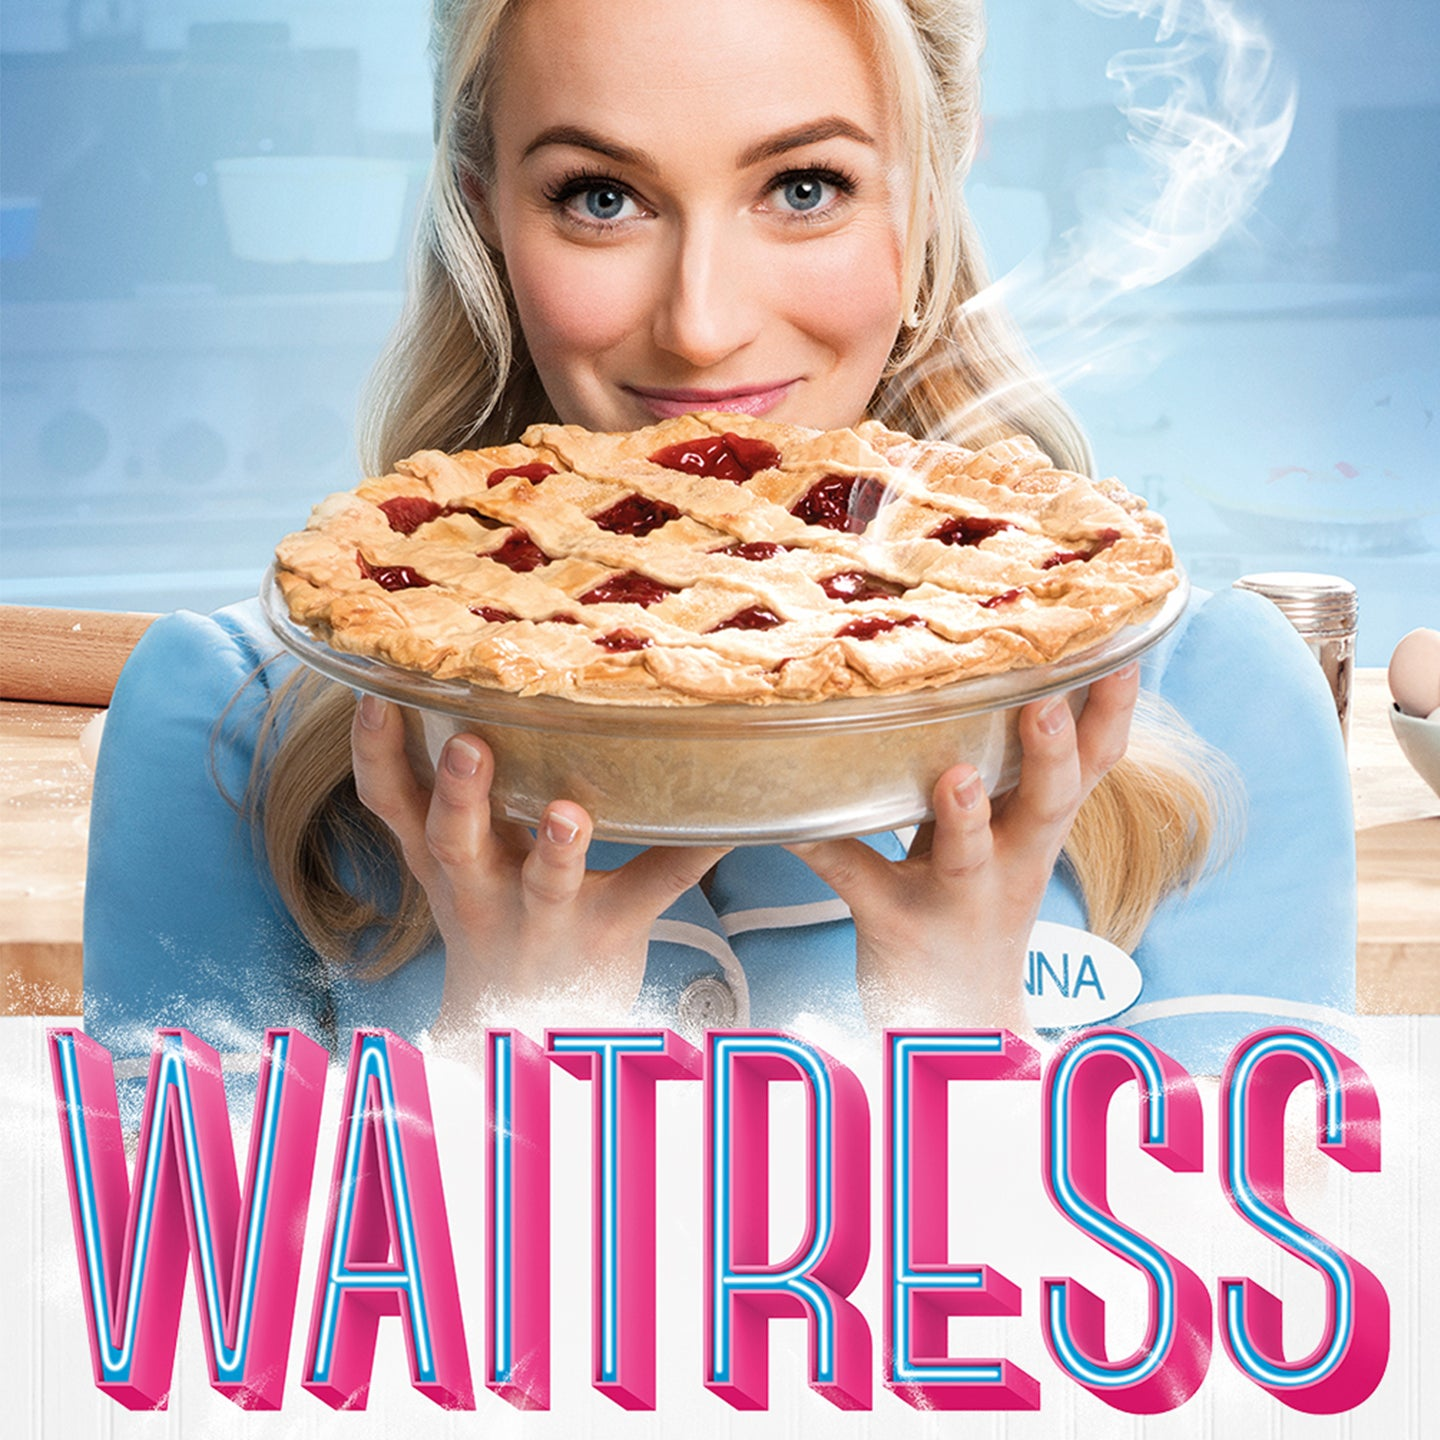 Waitress_1440x1440_NEW.jpg